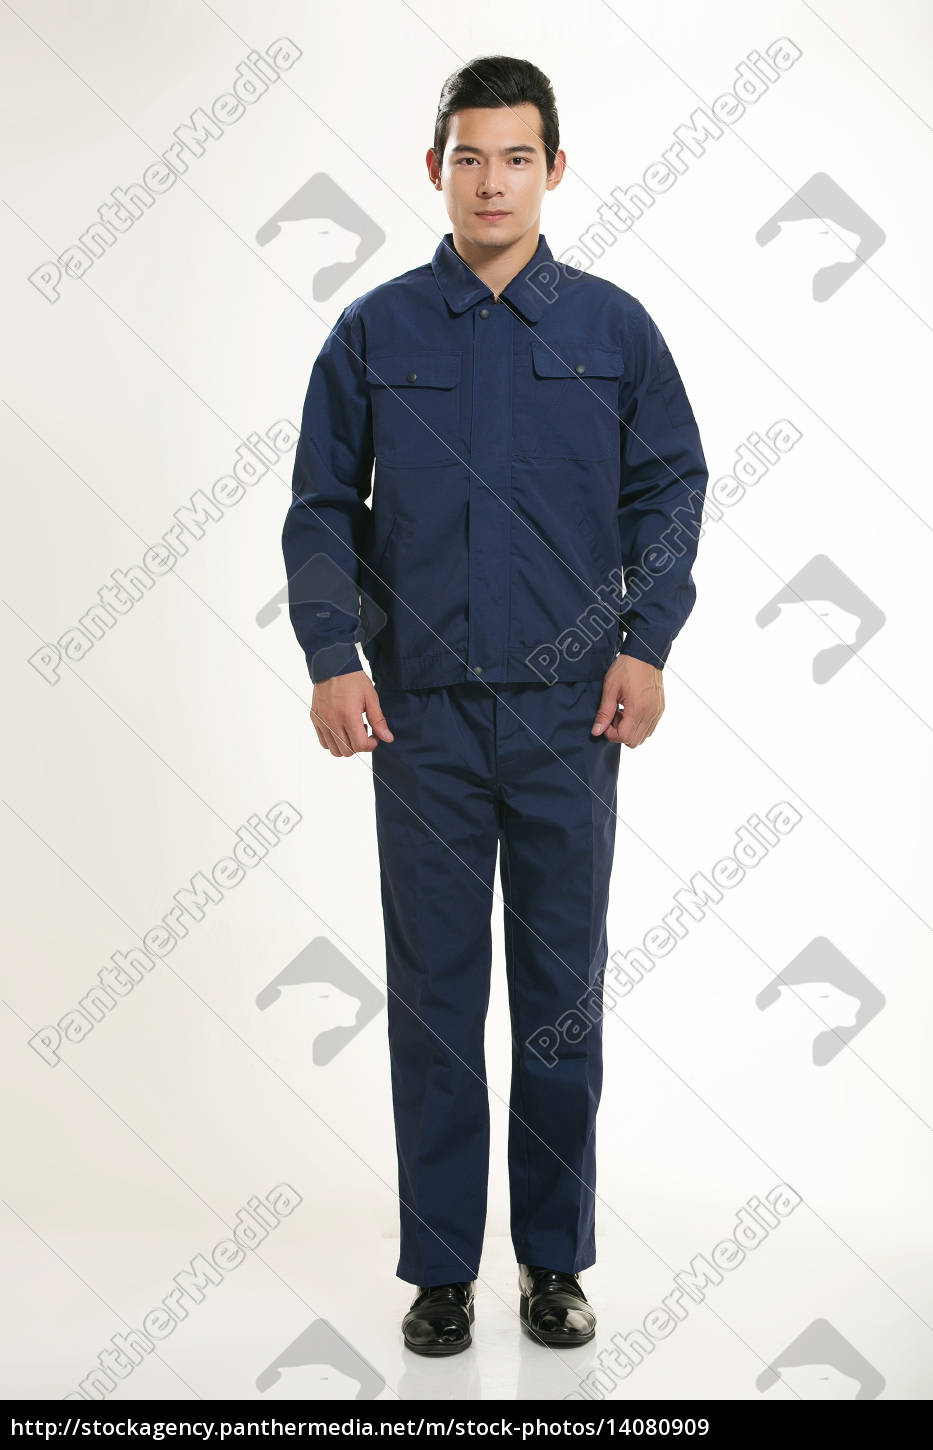 the, young, engineer, various, occupation, clothing - 14080909